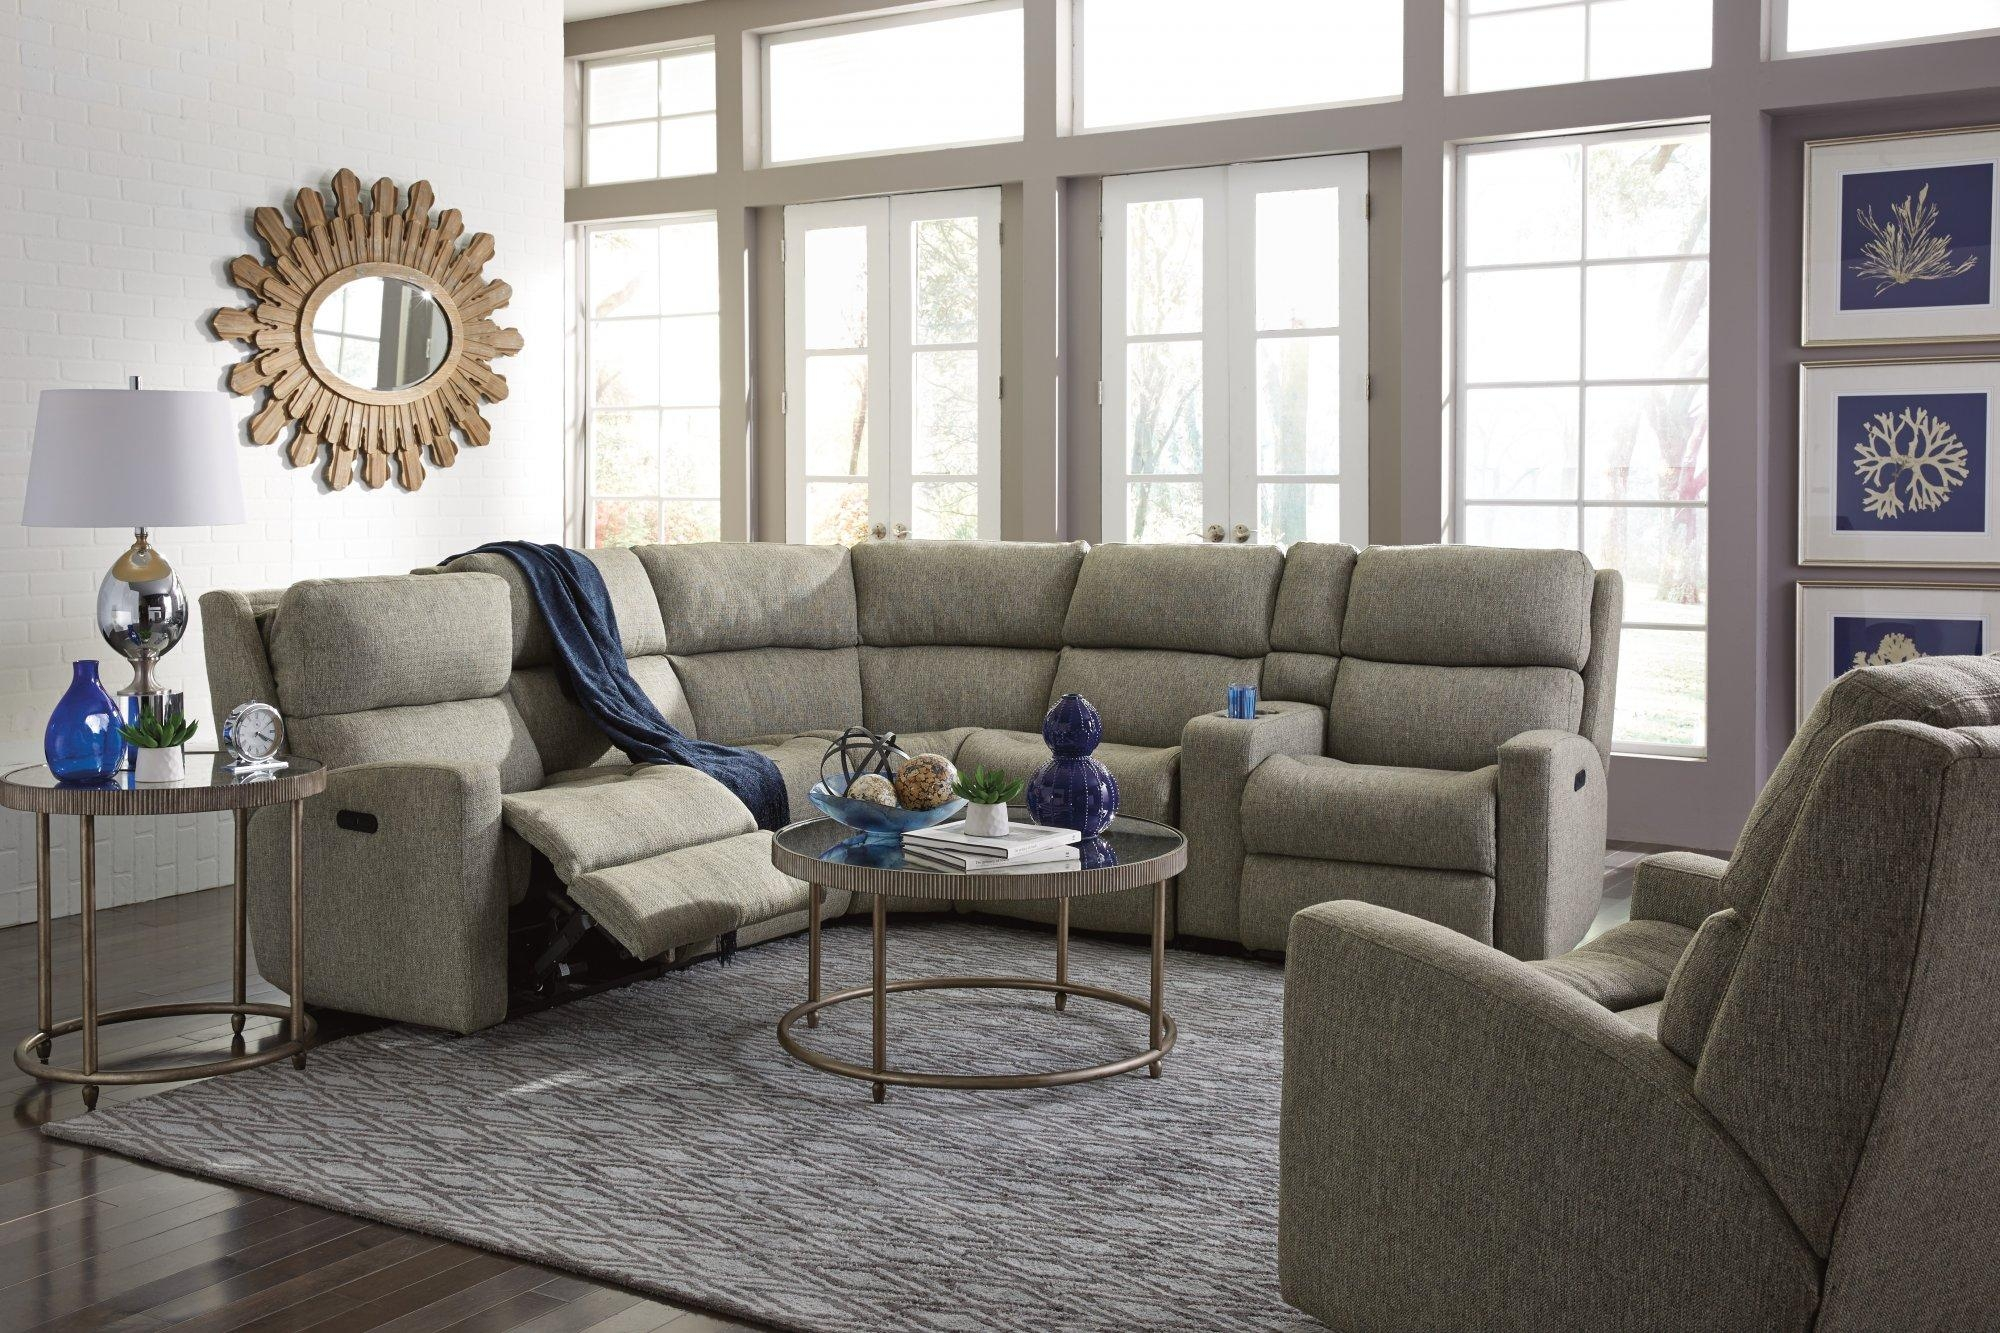 Furniture: Jedd Fabric Reclining Sectional Sofa | Sectional Within Jedd Fabric Reclining Sectional Sofa (Image 13 of 20)